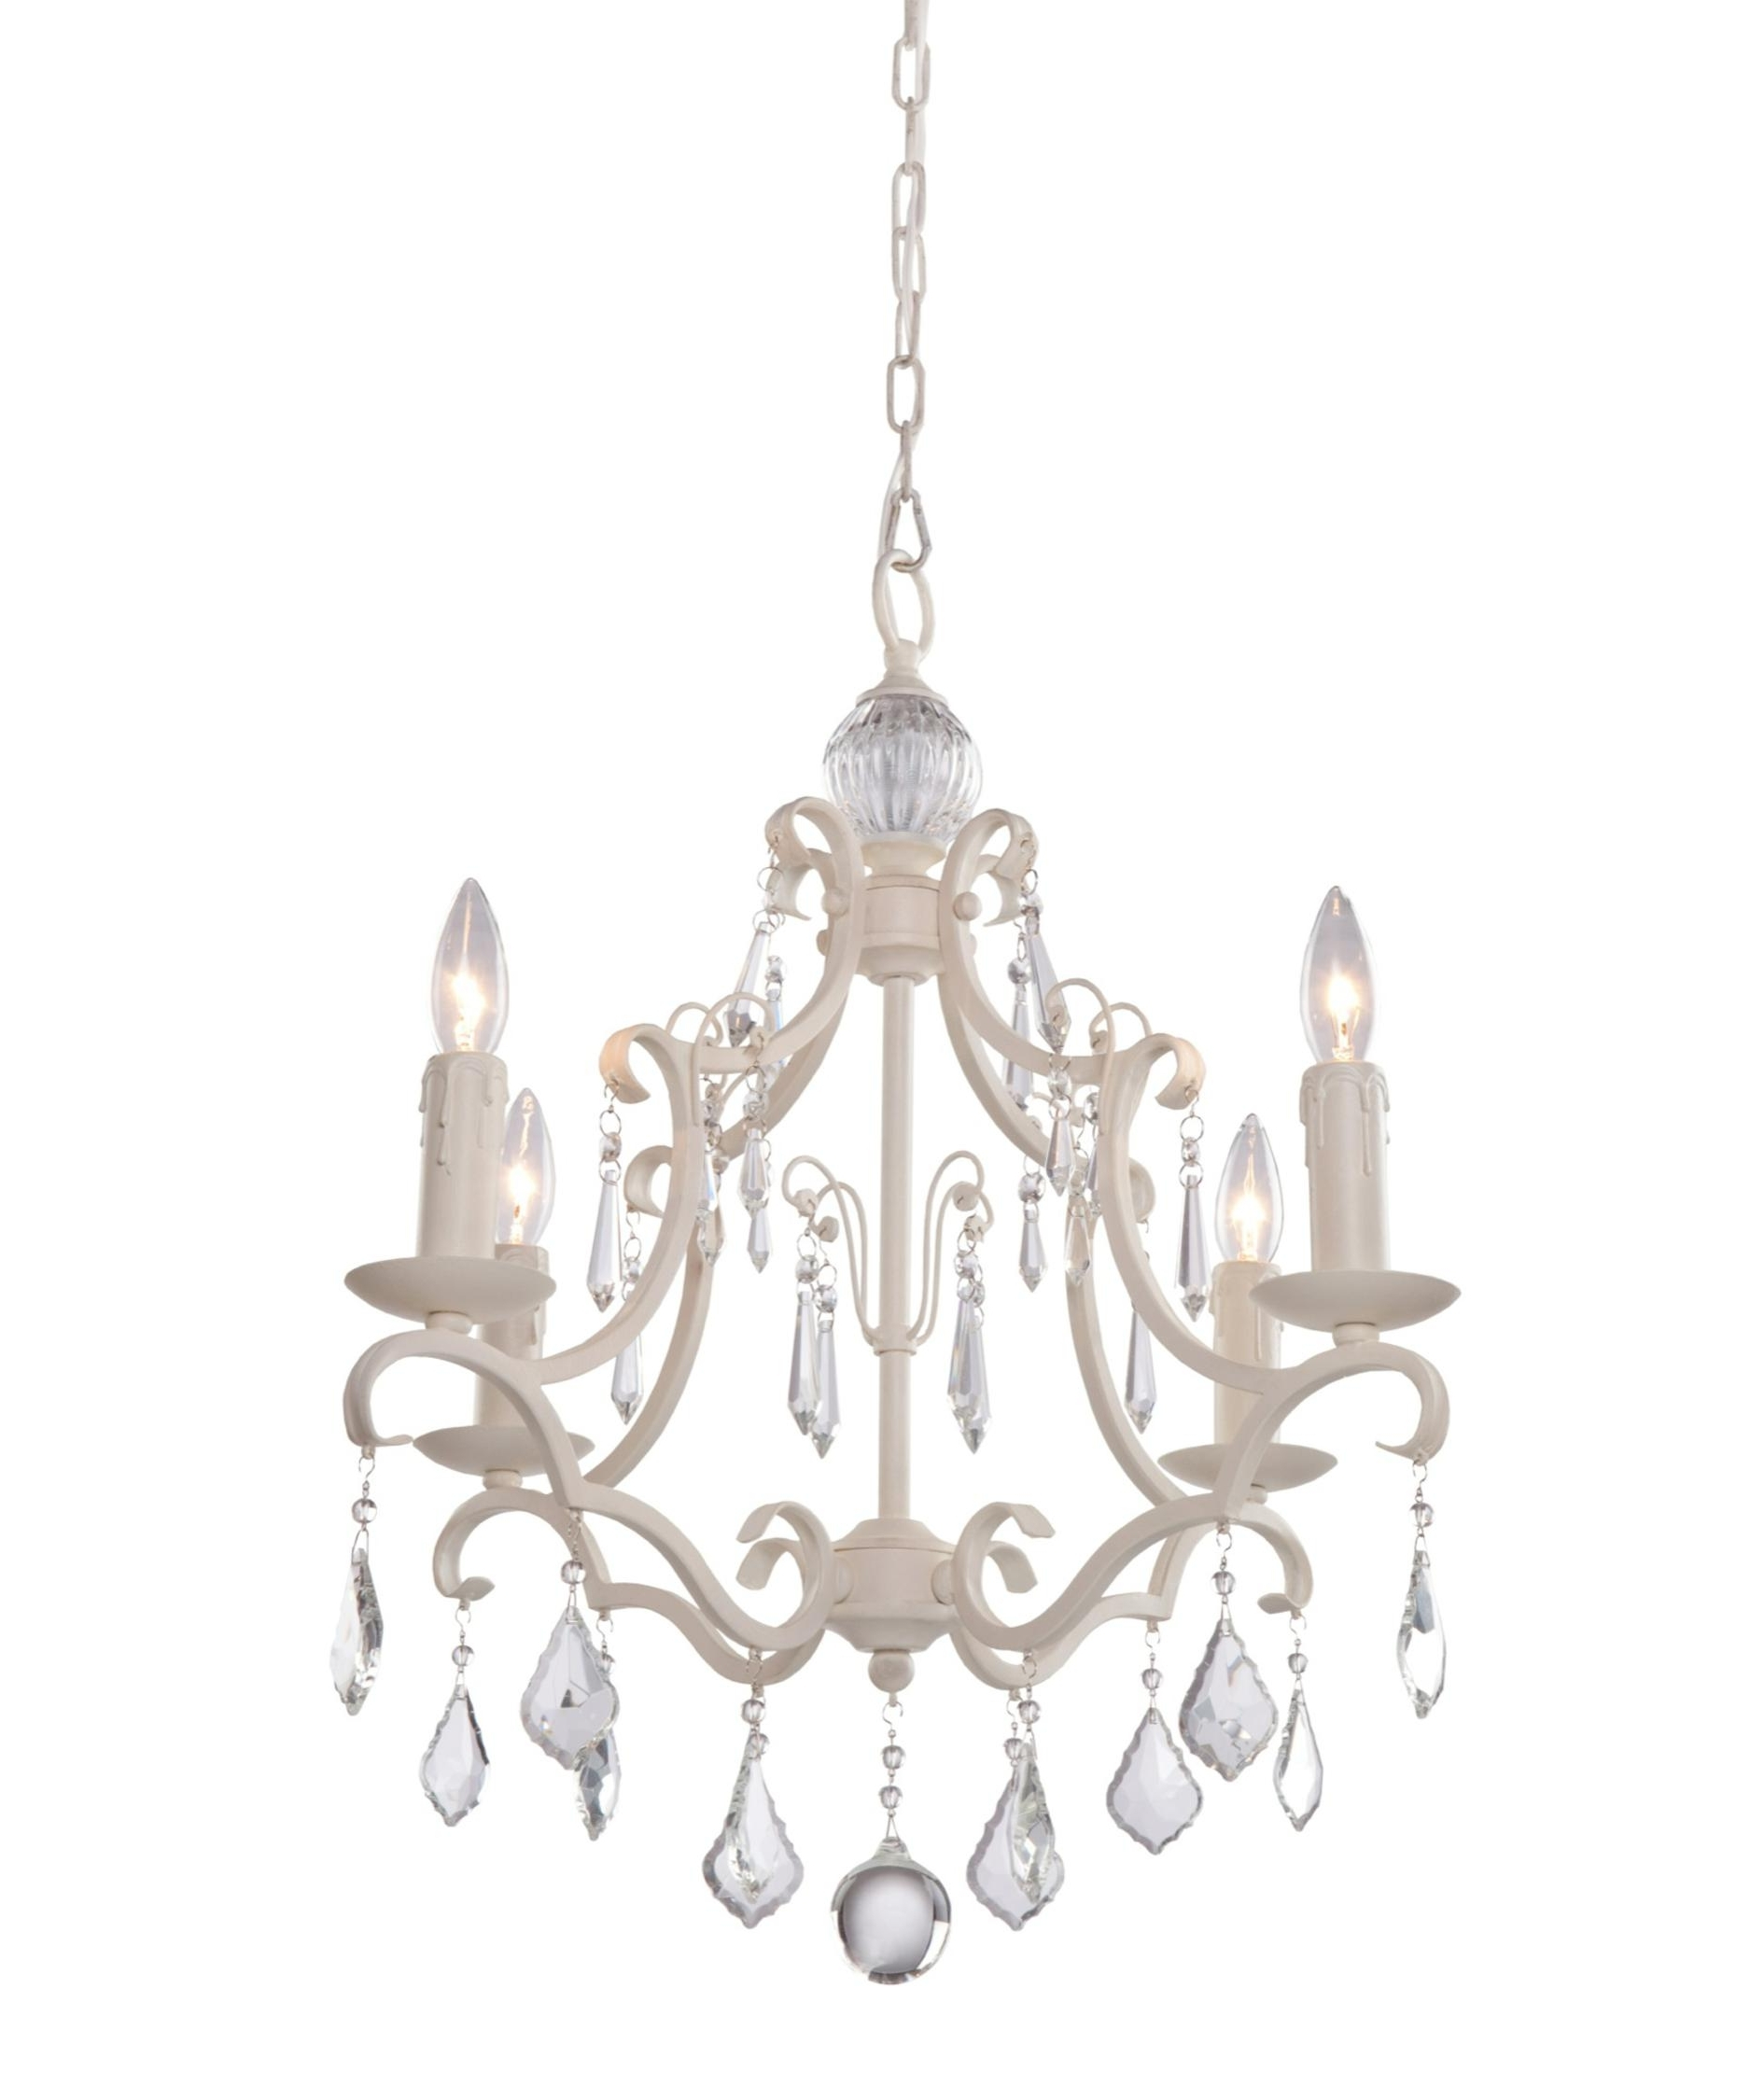 Vintage Chandeliers Ebay - Otbsiu throughout Fashionable Vintage Chandeliers